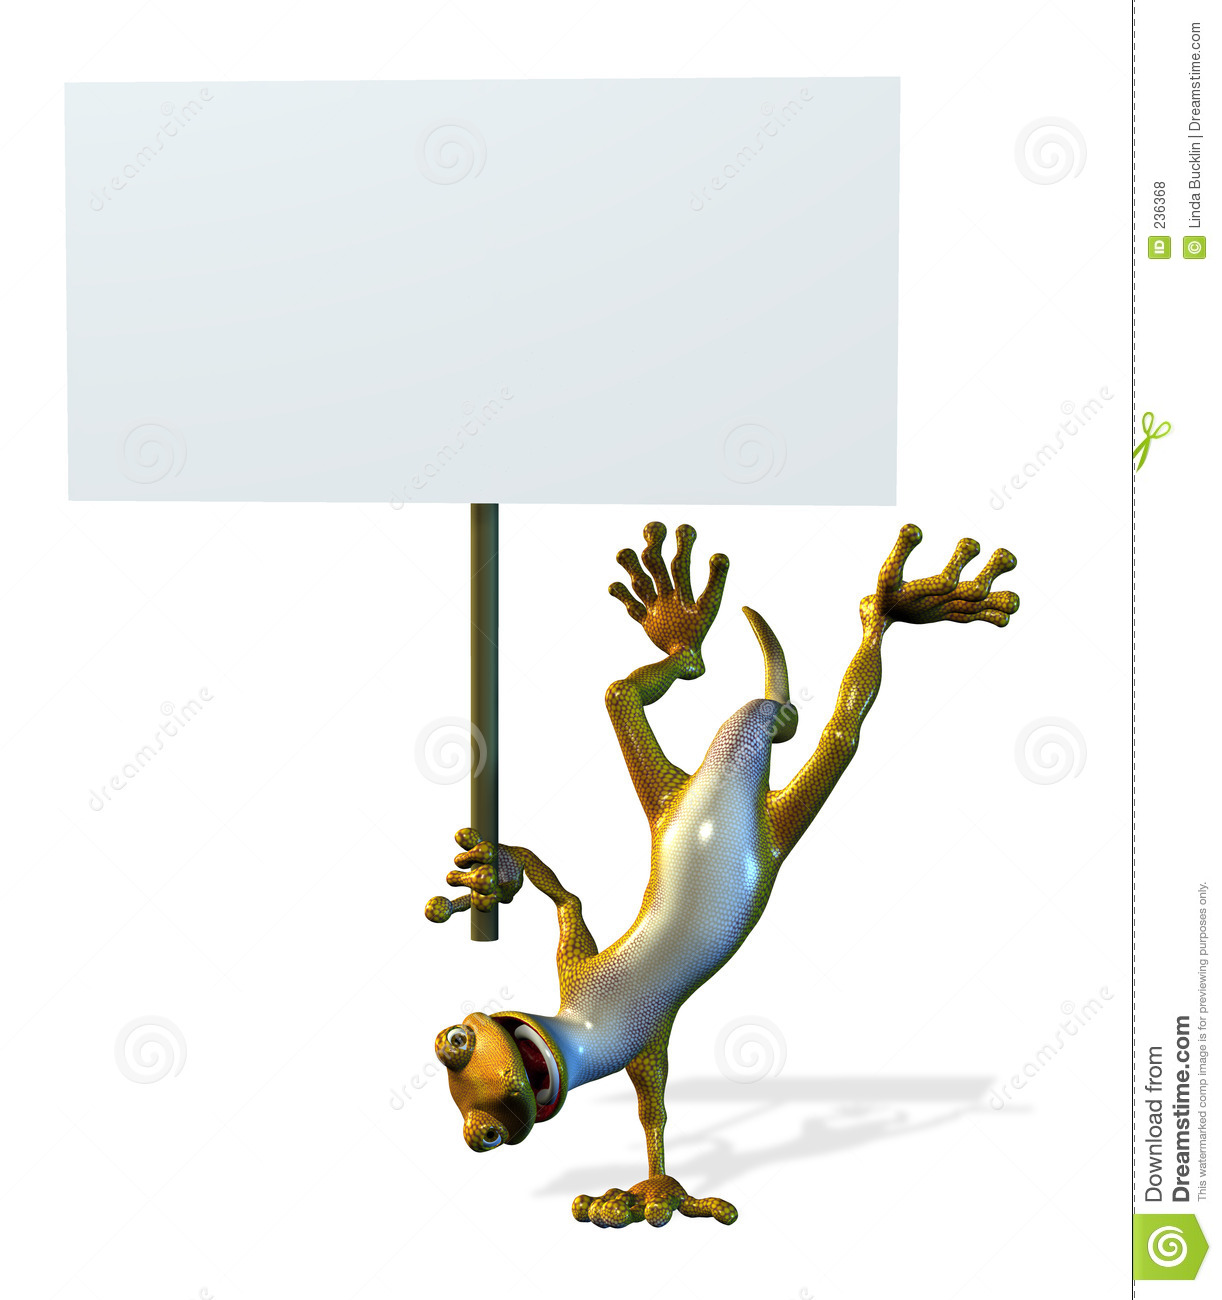 Goofy Gecko with Blank Sign - includes clipping path